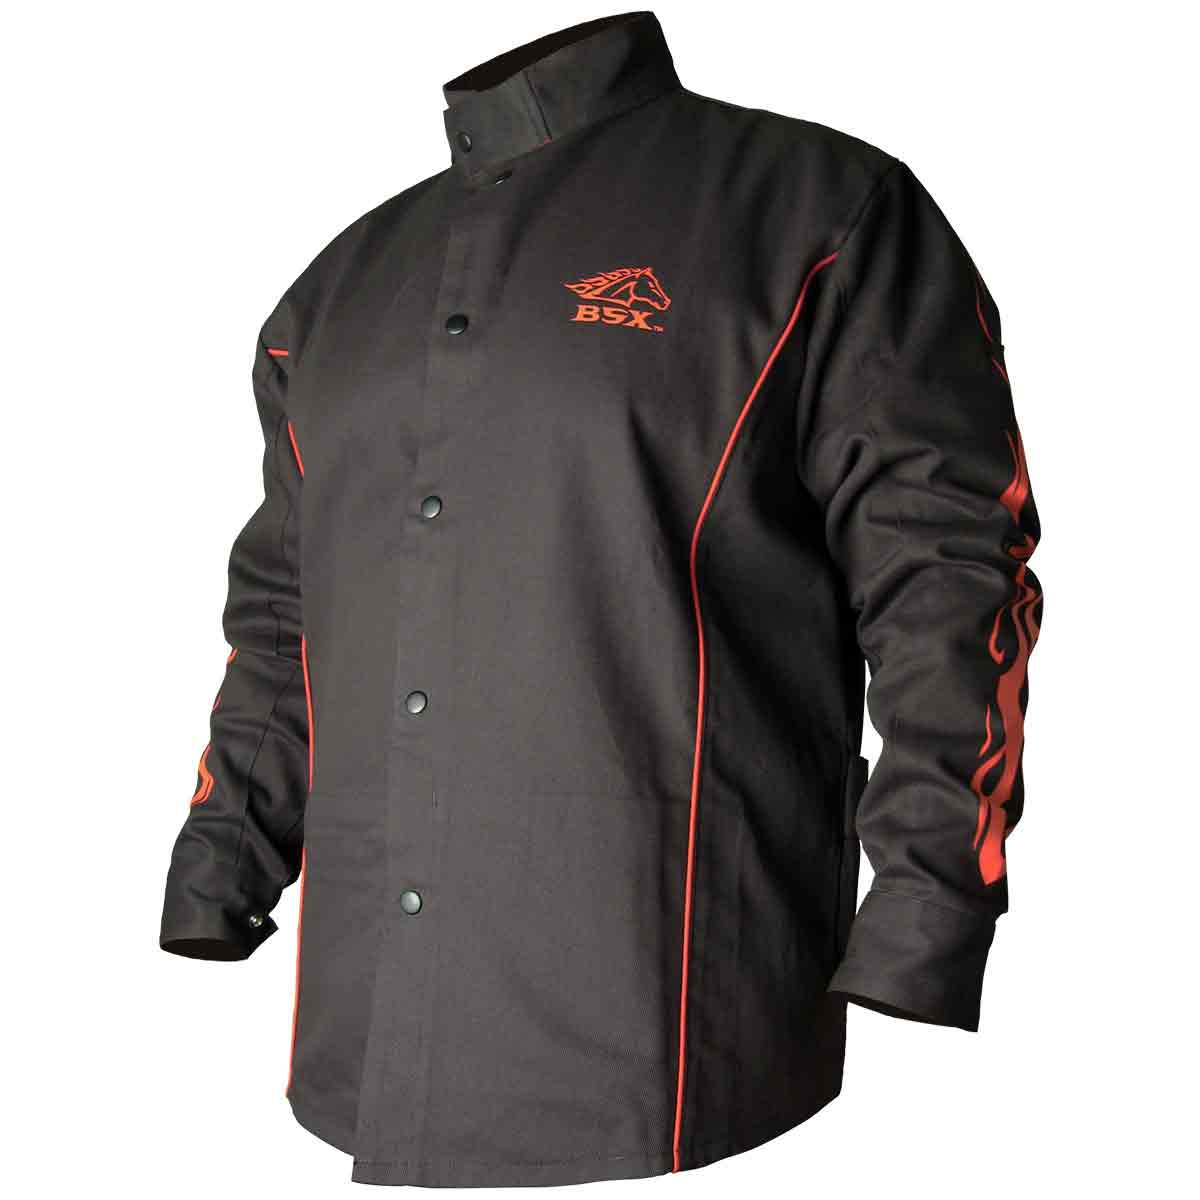 Black Stallion BSX BX9C 9oz. FR Cotton Welding Jacket Black W/Red Flames, 2X-Large